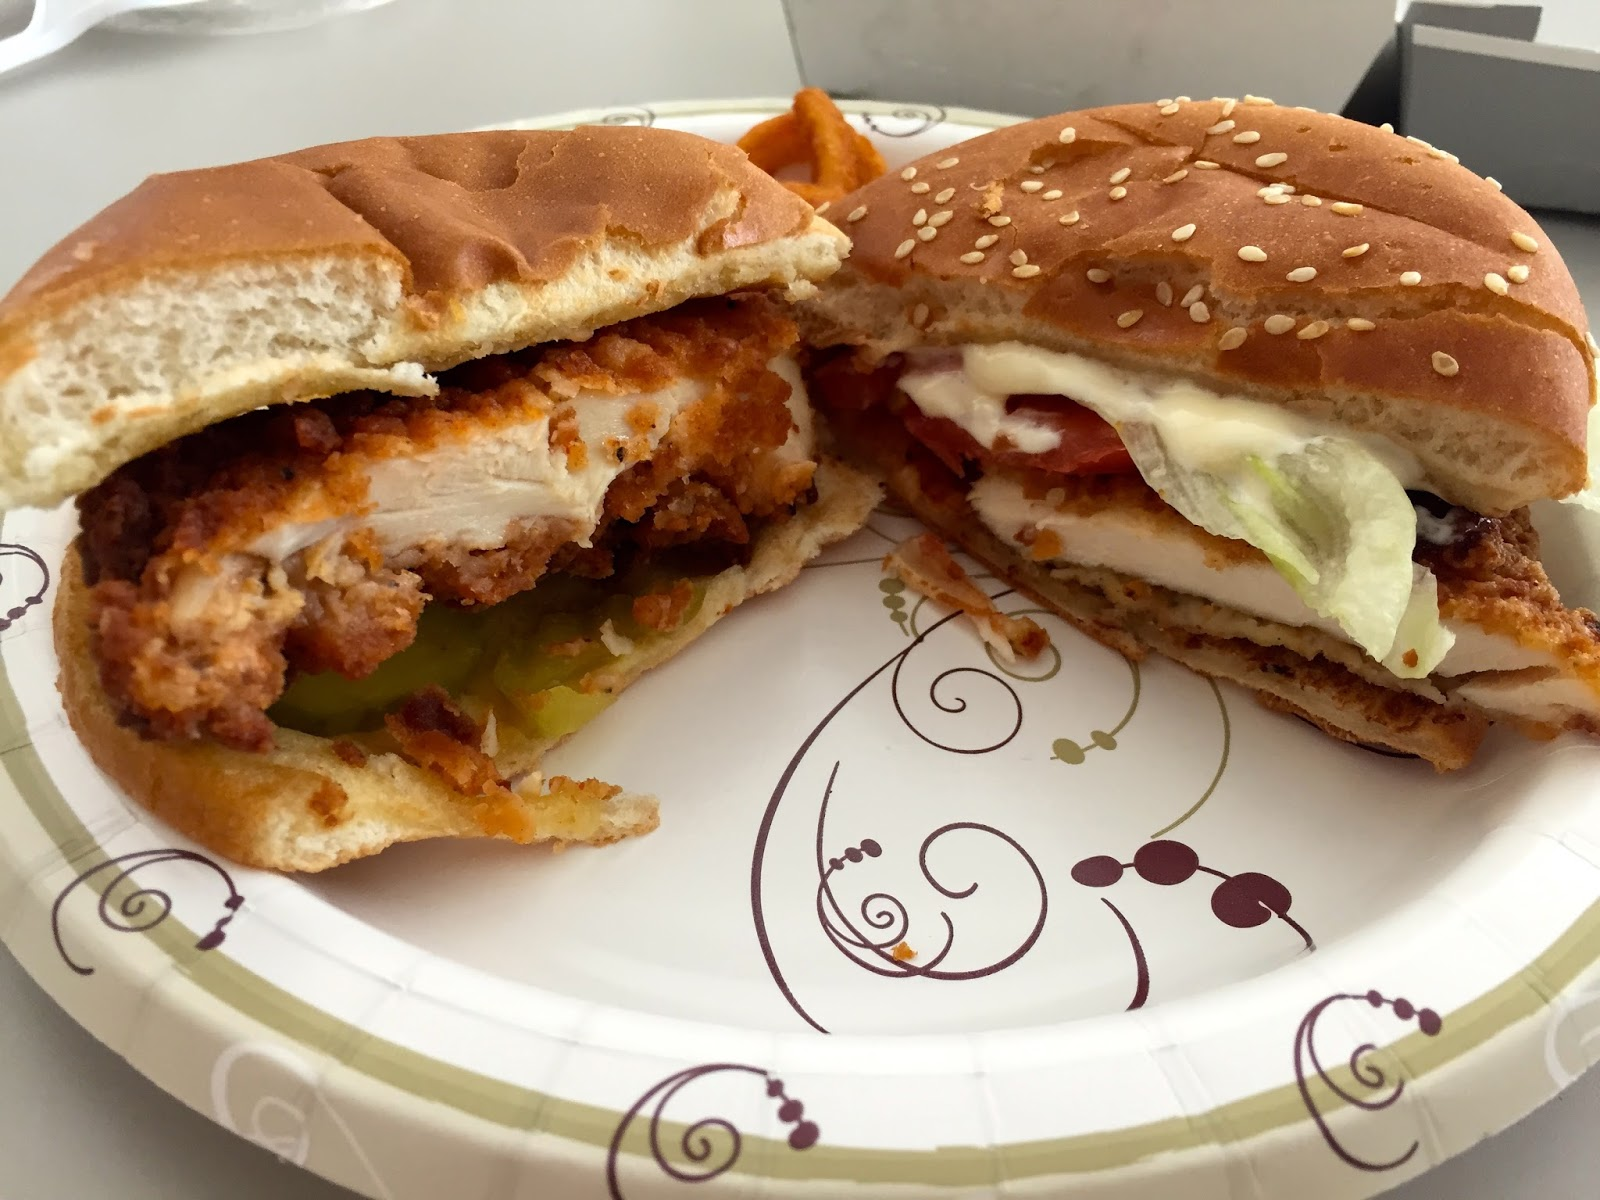 On The Left You See Chick Fil A Spicy Chicken Sandwich With Some Mayo And Pickles Sauce Side Because Its Just Not Fair To Compare